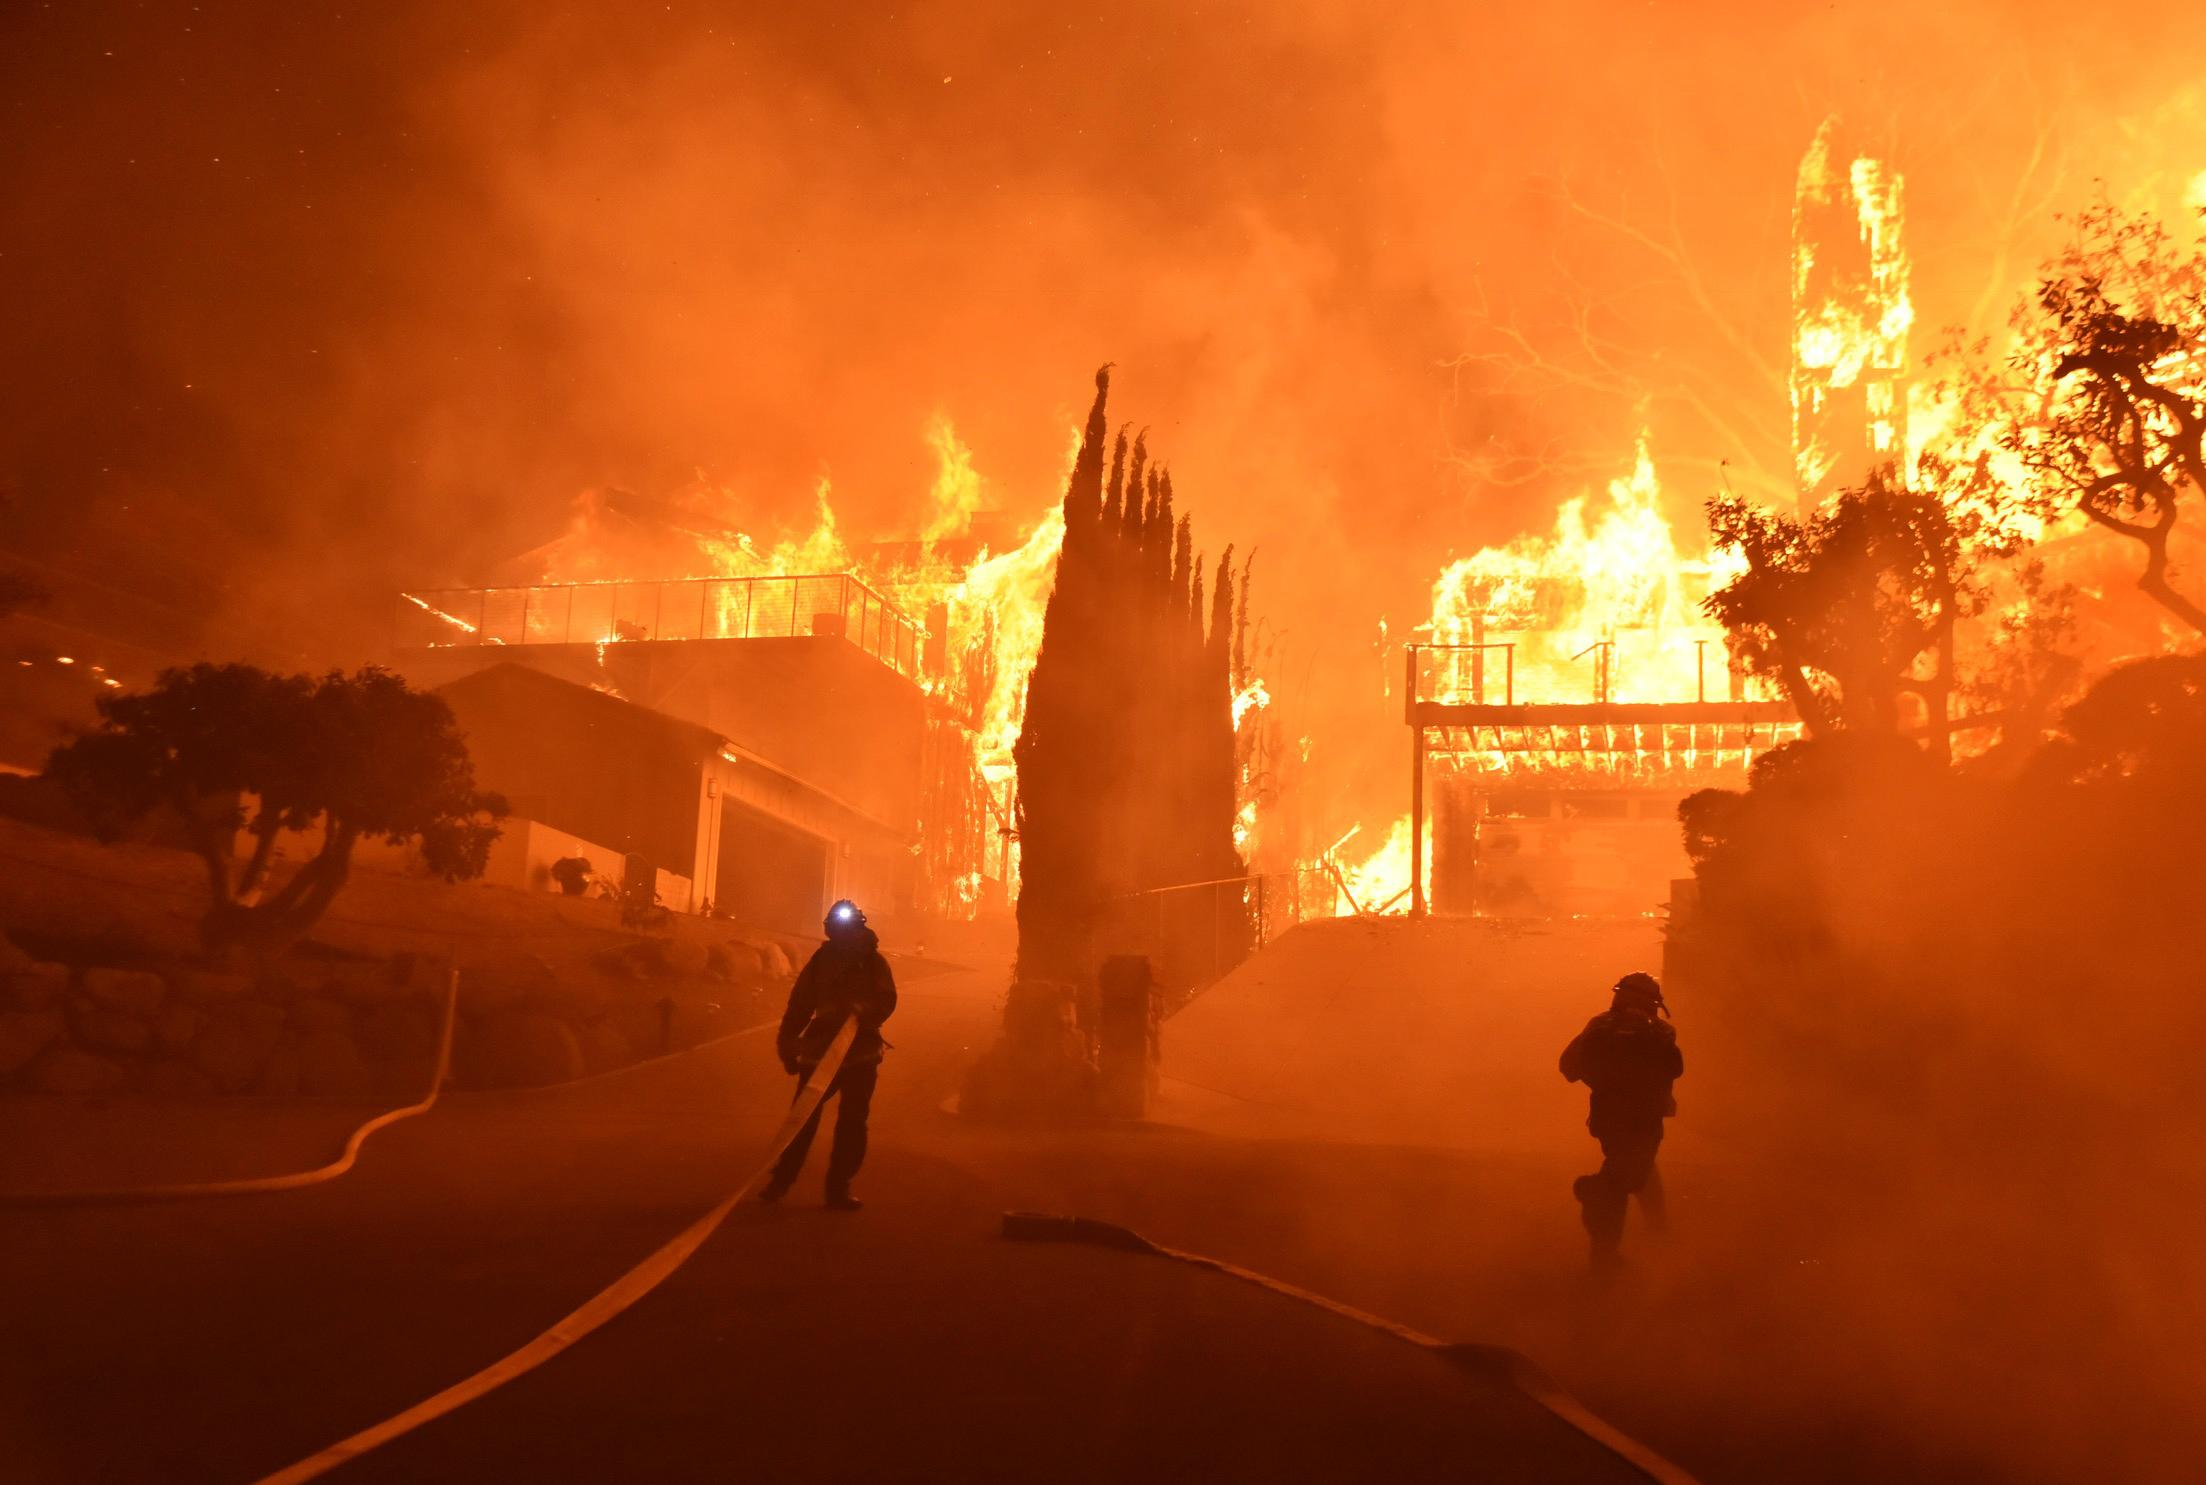 In this photo provided by the Ventura County Fire Department, firefighters work to put out a blaze burning homes early Tuesday, Dec. 5, 2017, in Ventura, Calif.  (Ryan Cullom/Ventura County Fire Department via AP)